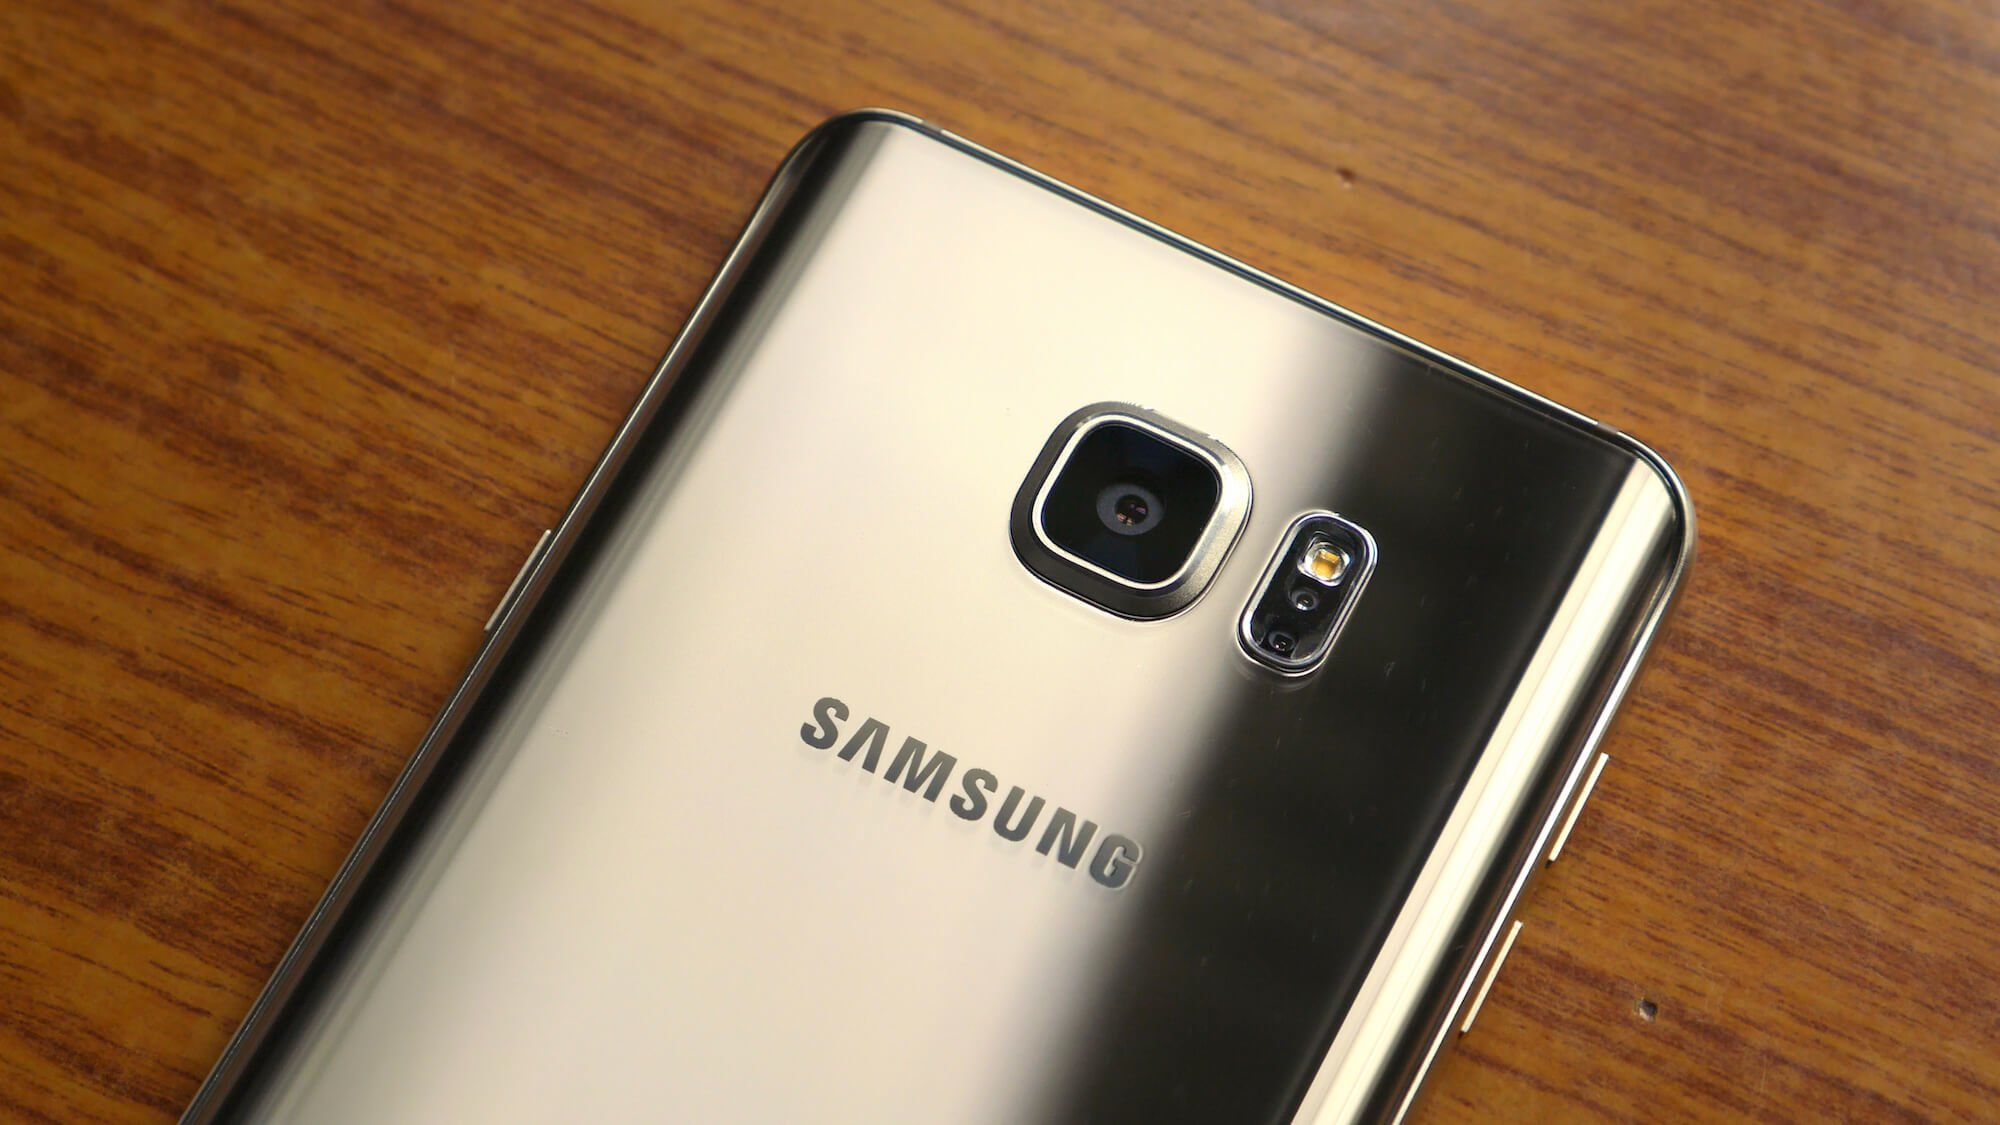 Samsung Galaxy Note 5 Rear-Facign Primary Camera & Heart-Rate Monitor